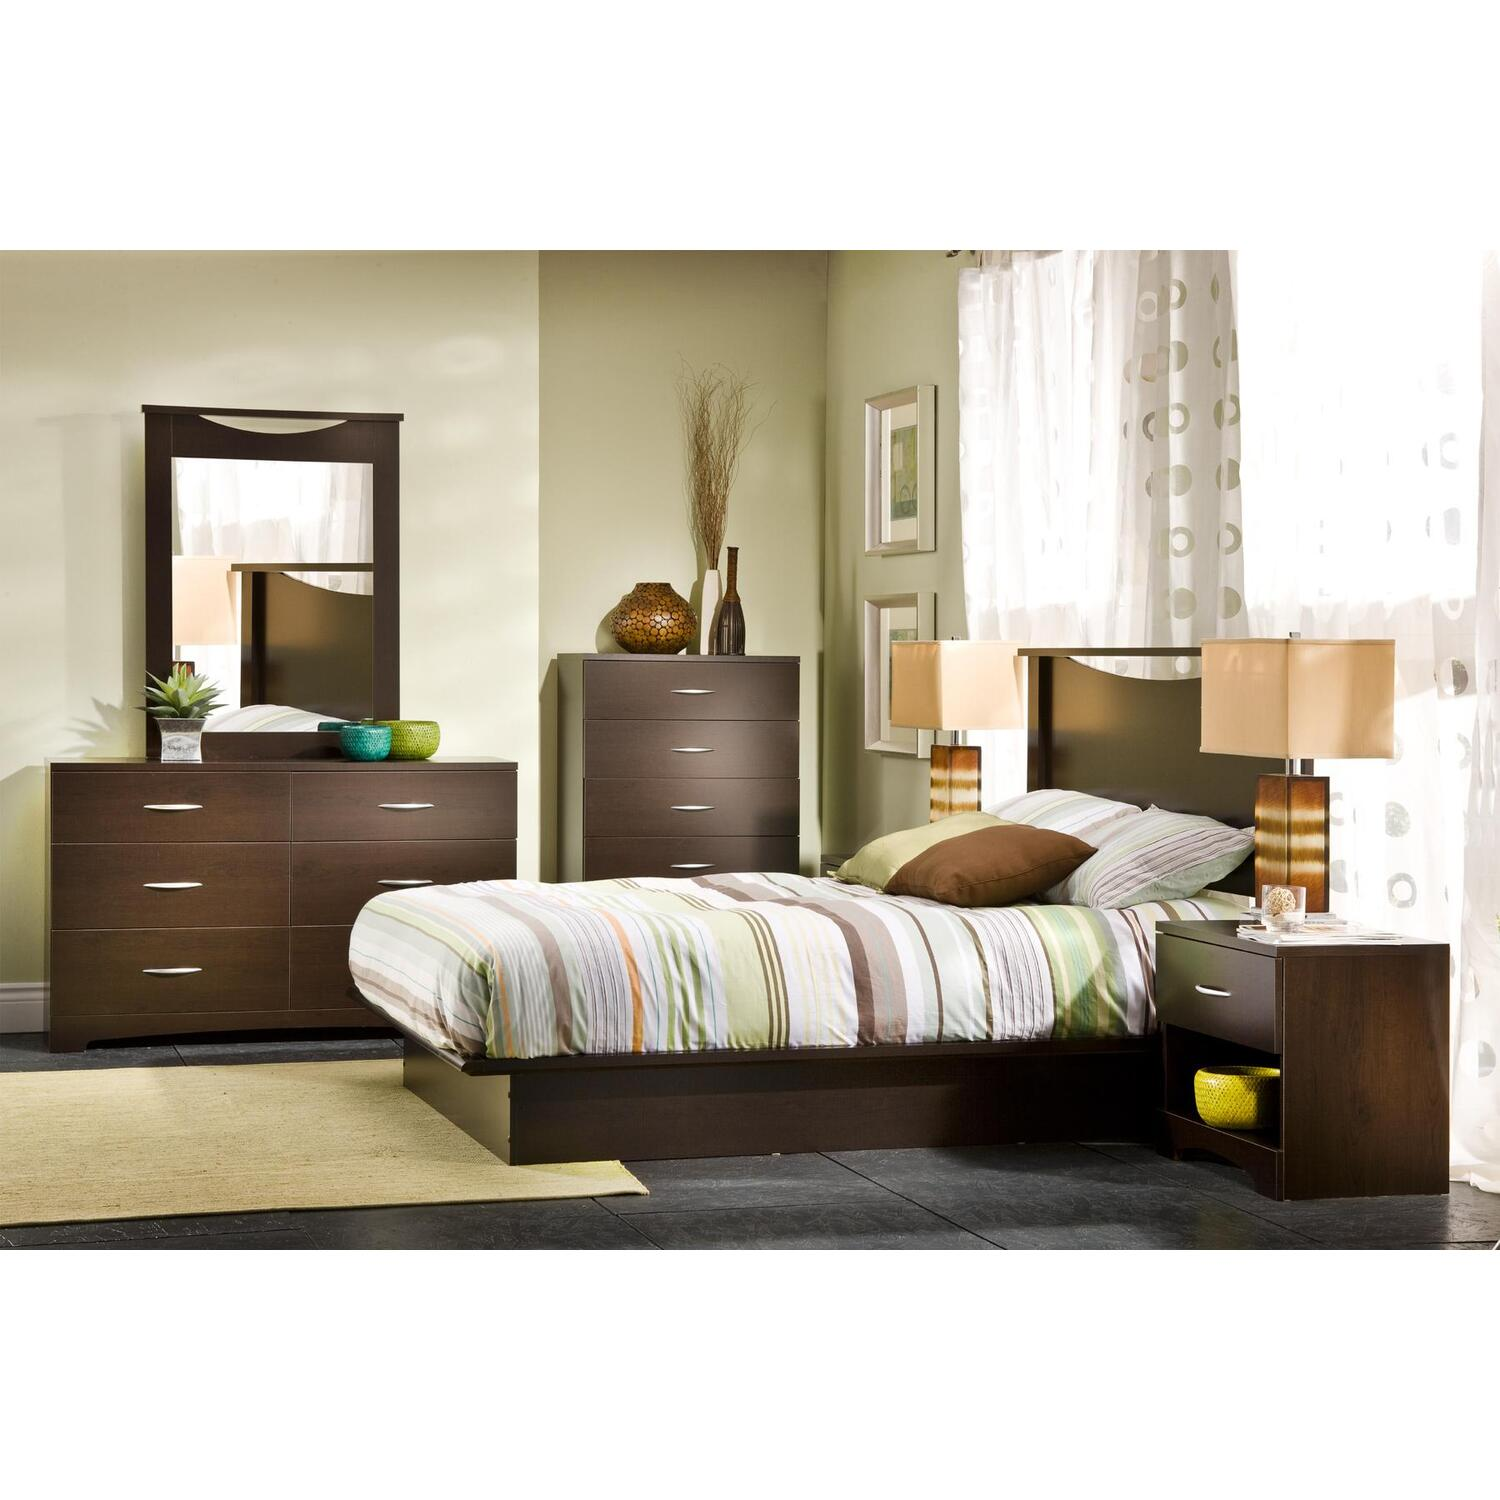 Genial Back Bay Queen Platform 7 Piece Bedroom Set   [3159Q7PC]